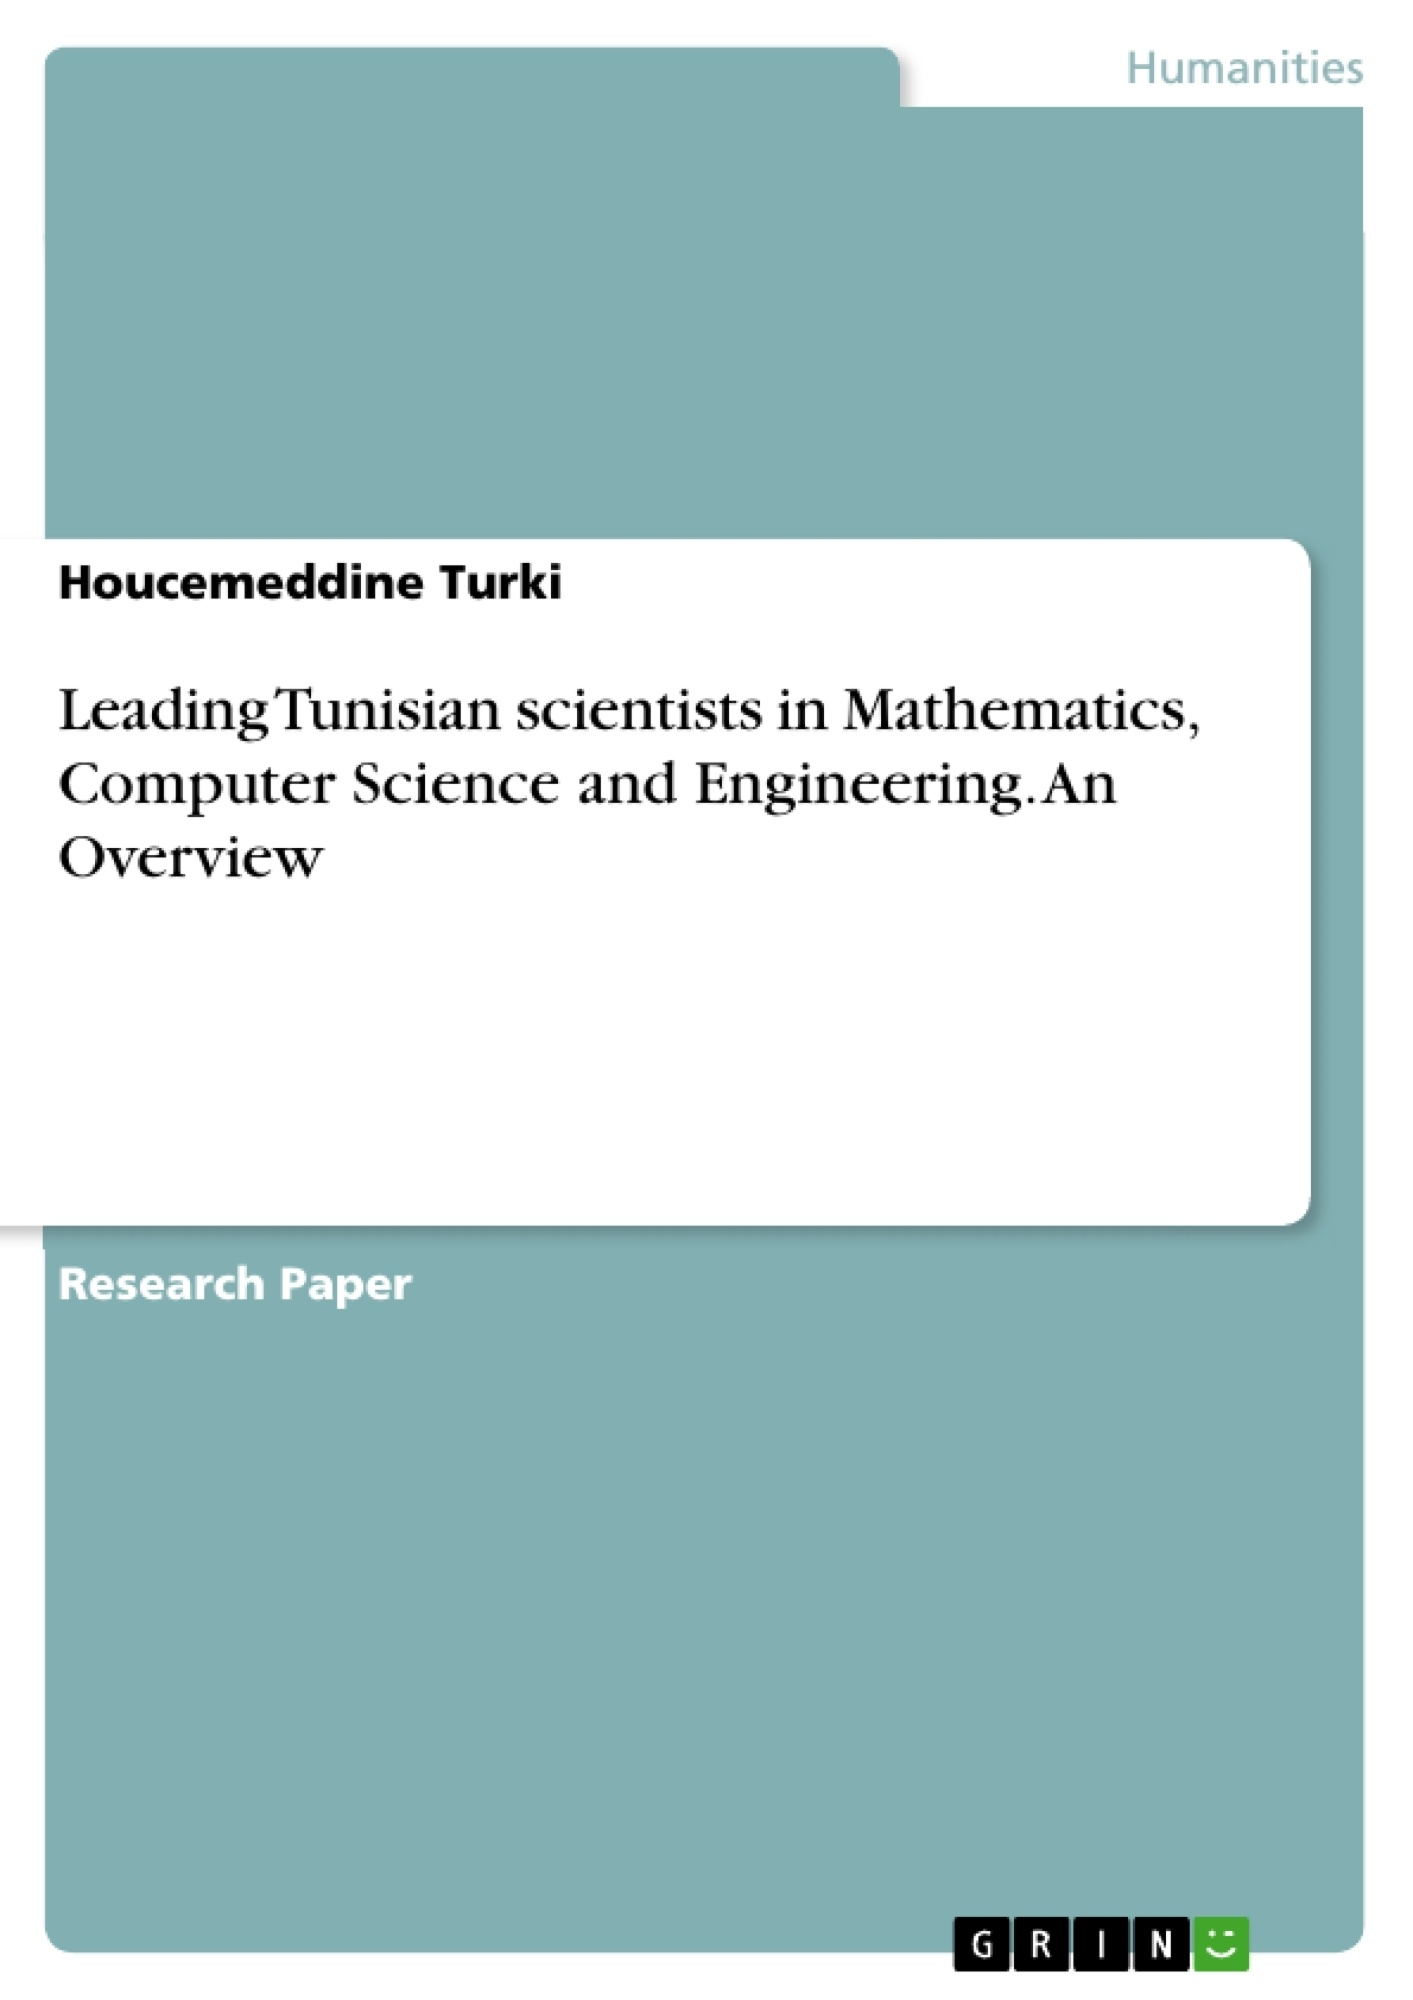 Title: Leading Tunisian scientists in Mathematics, Computer Science and Engineering. An Overview